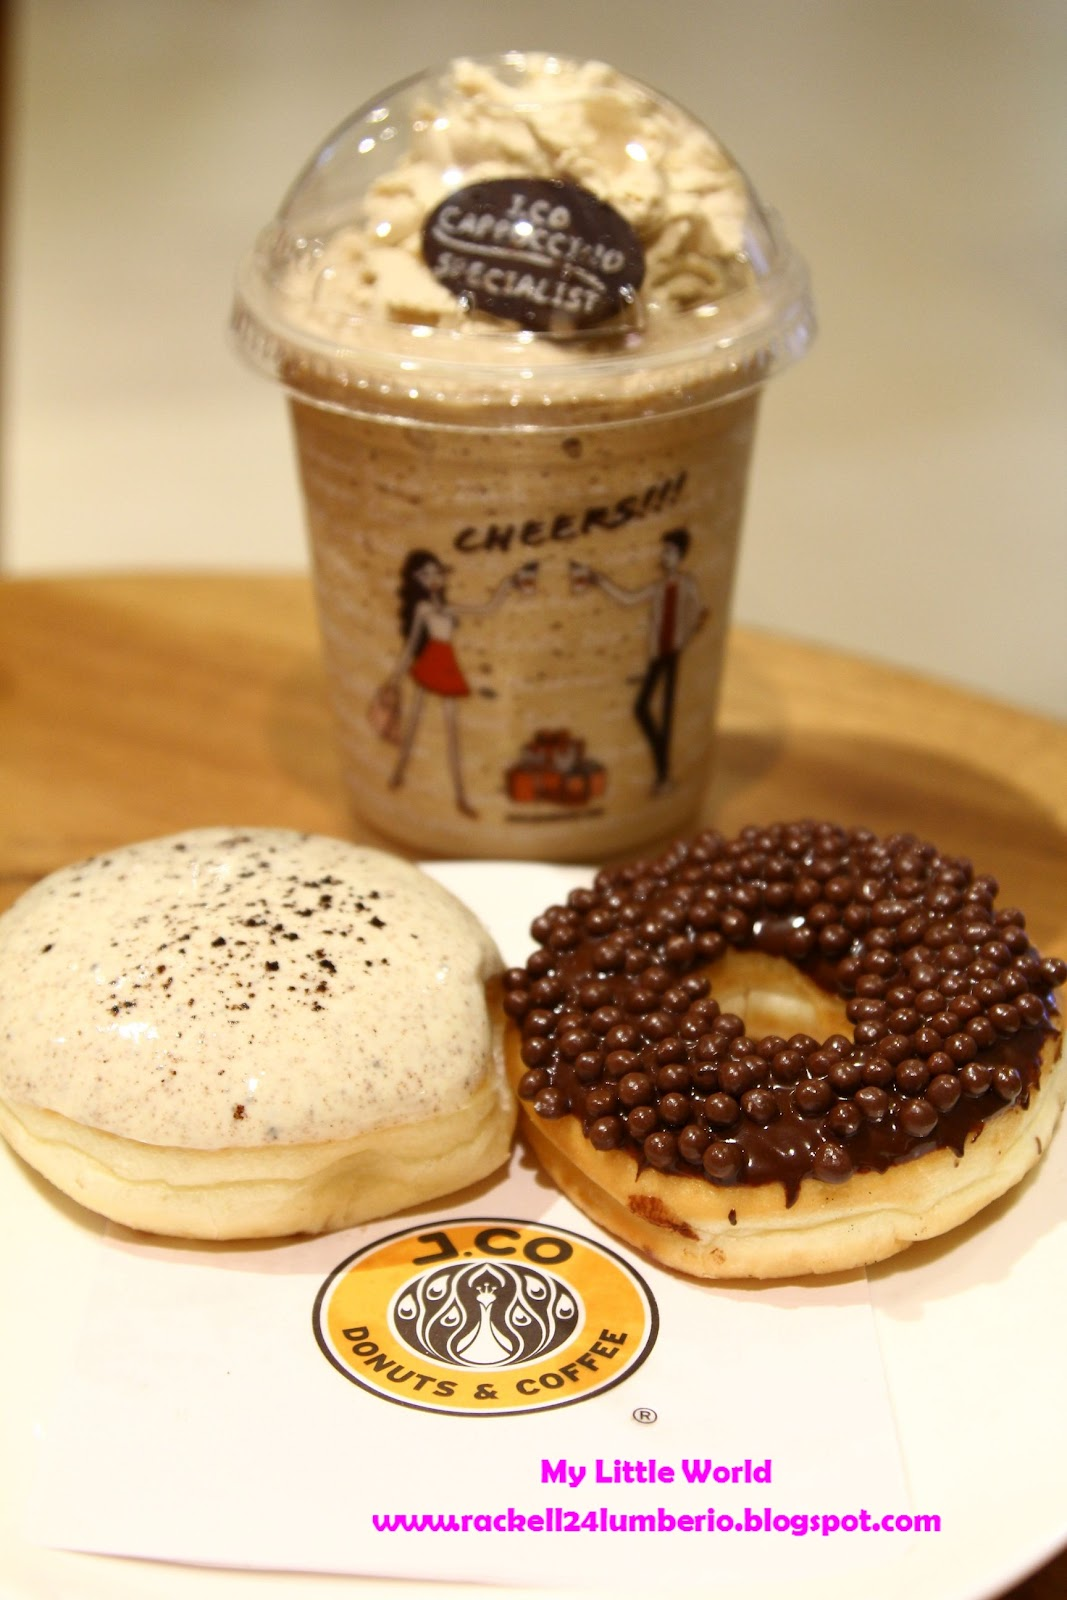 jco donut and coffee 5 reviews of jco donuts & coffee no one resists  jco lost a star for me because their coffee is  people found jco donuts & coffee by searching for donut.